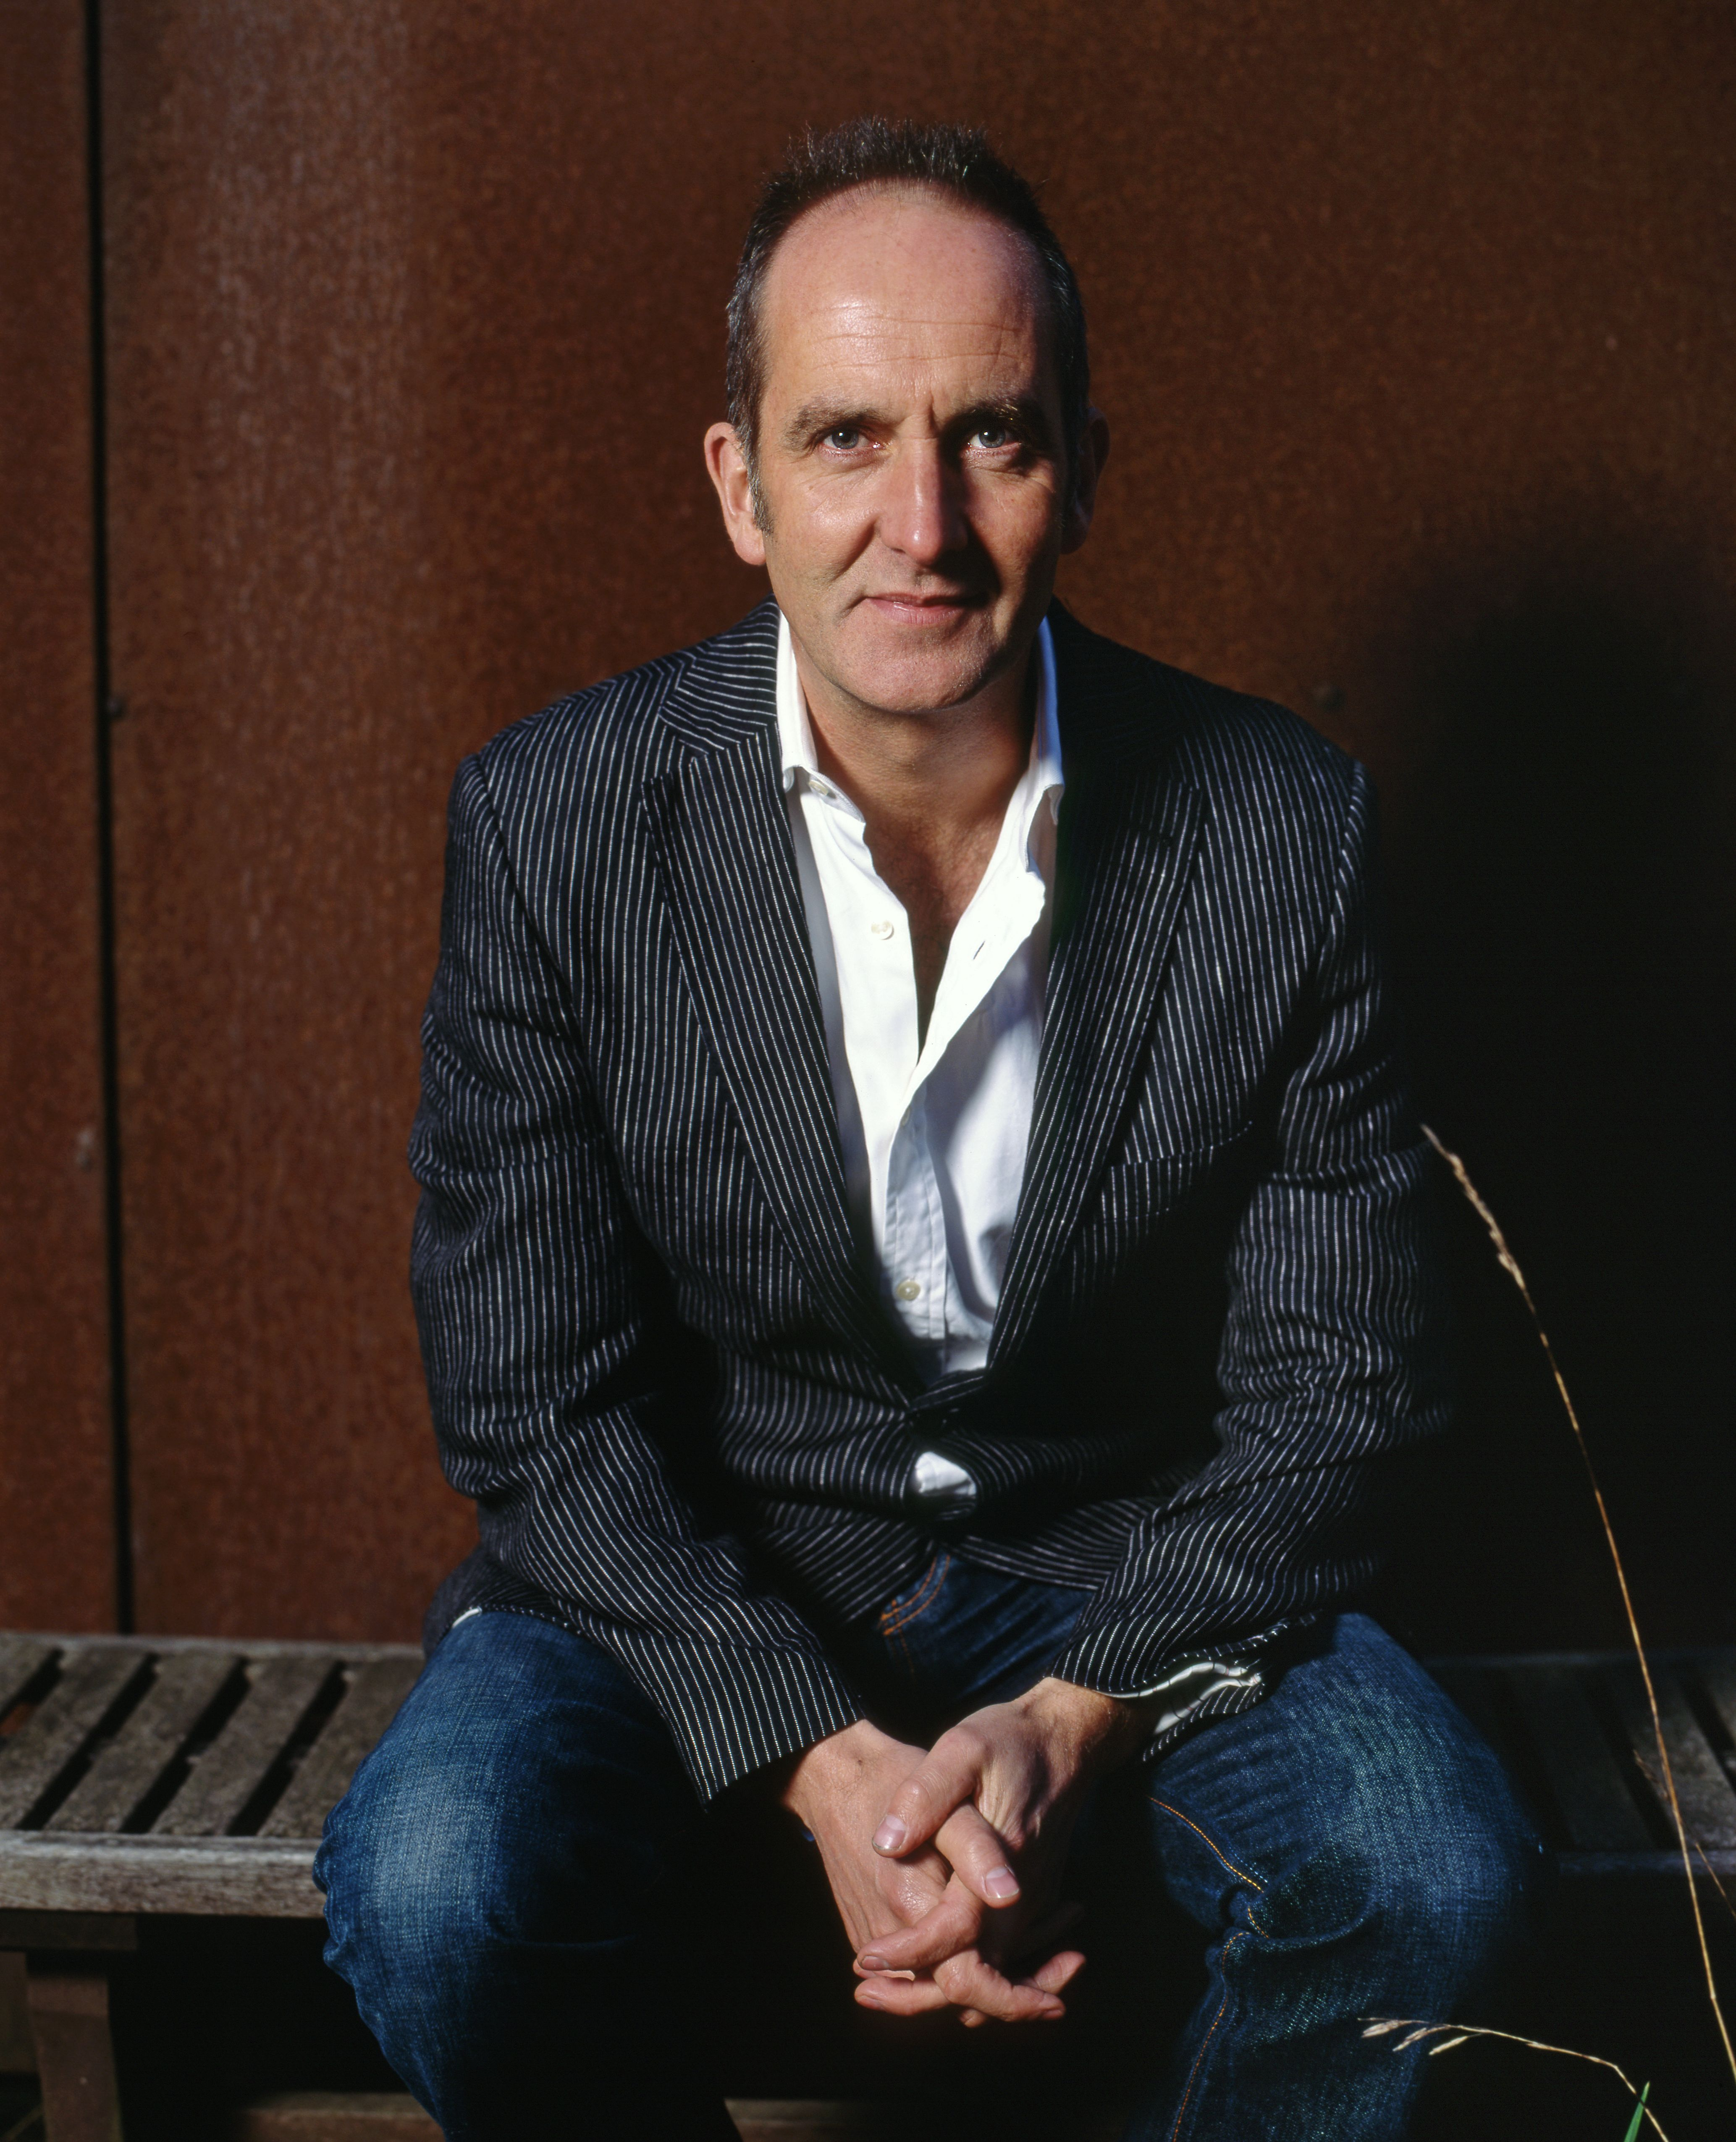 Kevin Mccloud To Officially Open The Inaugural Grand